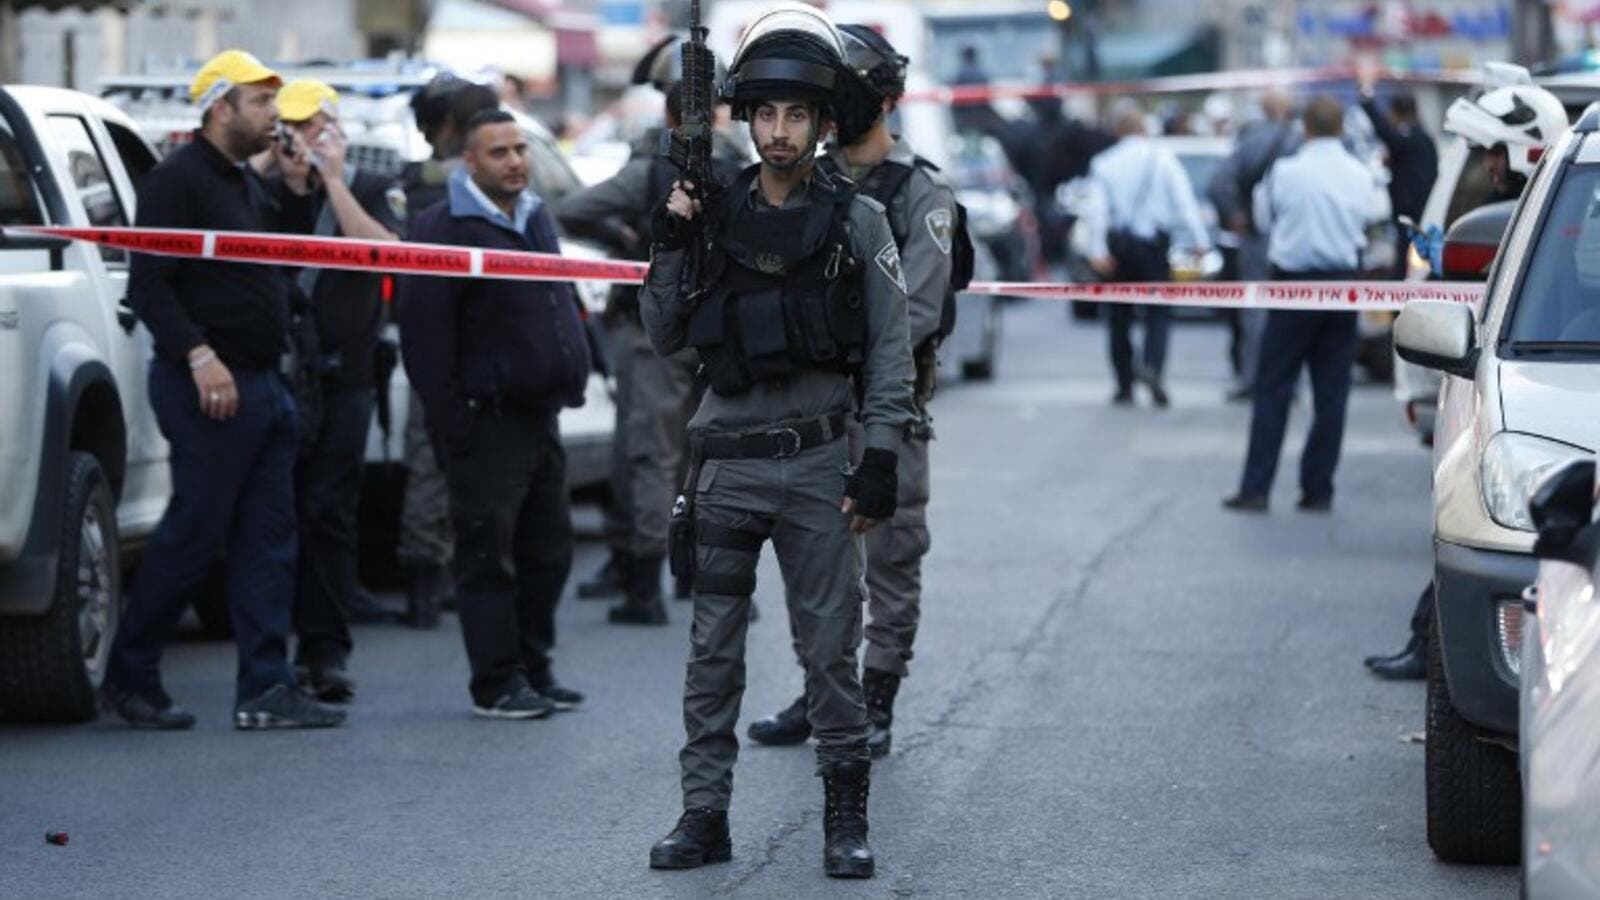 Israeli security forces seal off the area in Arab east Jerusalem's Salahedin street where a shooting attack took place on March 8, 2016. (AFP/Ahmad Gharabli)